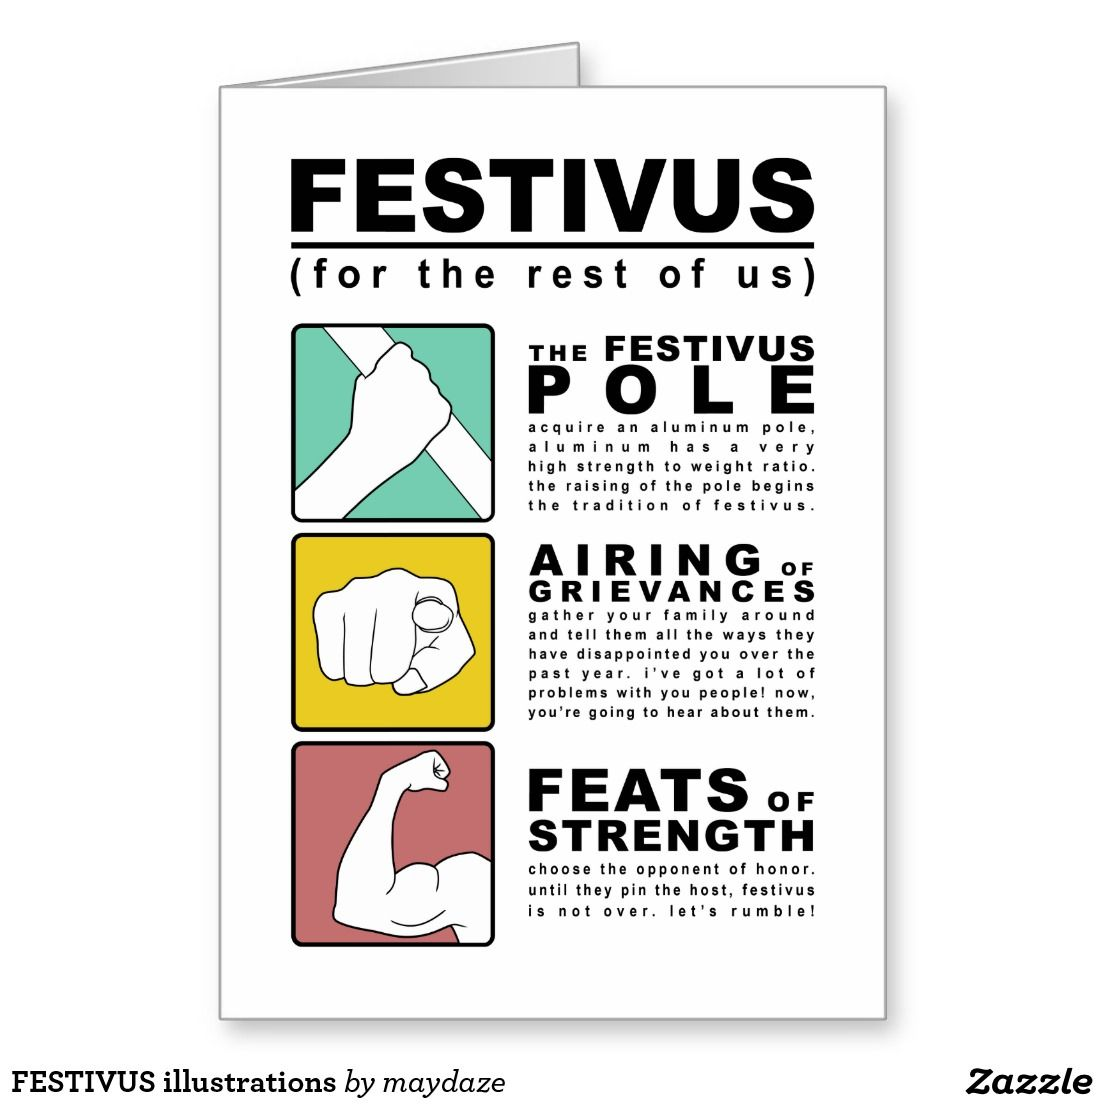 Festivus illustrations holiday card get this party started festivus illustrations greeting card by maydaze asyrum the festivus pole airing of grievances m4hsunfo